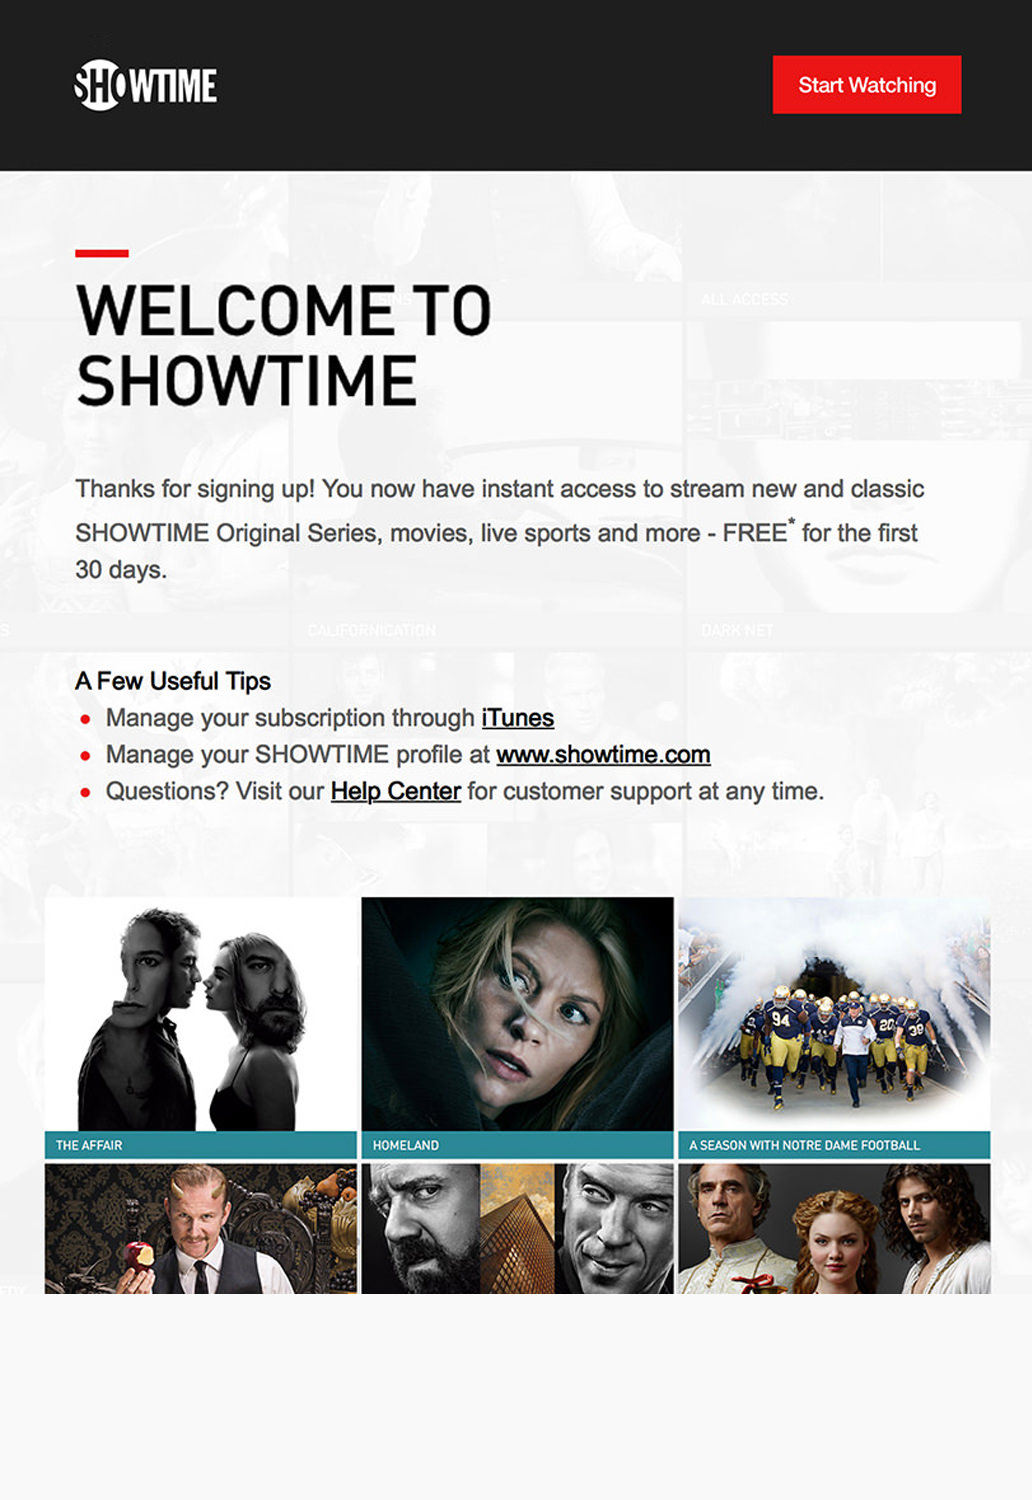 Media and Entertainment Email Marketing - Showtime